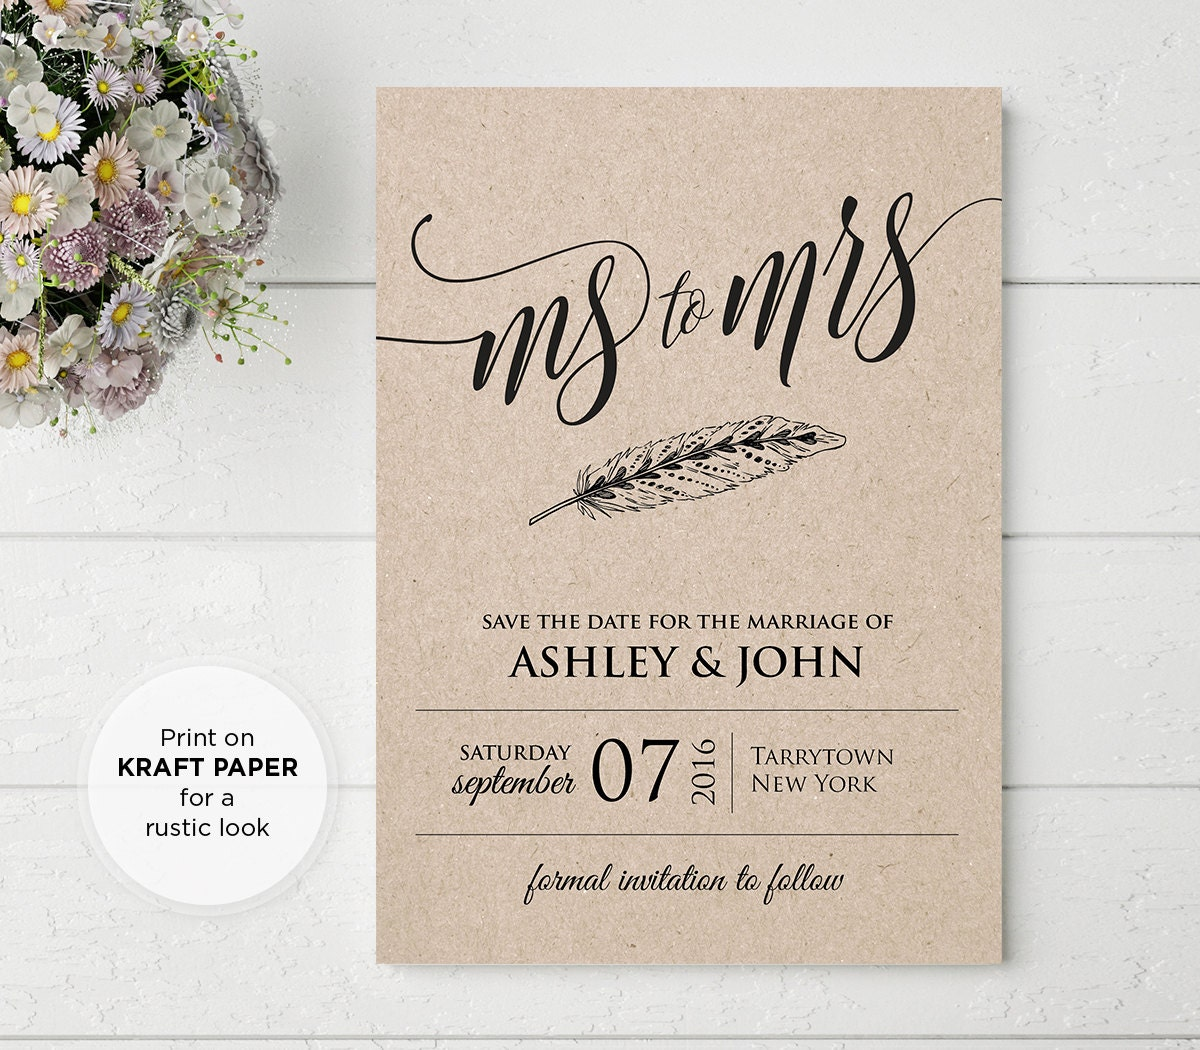 Wedding save the date template instant download ms to mrs for Save the date templates free download